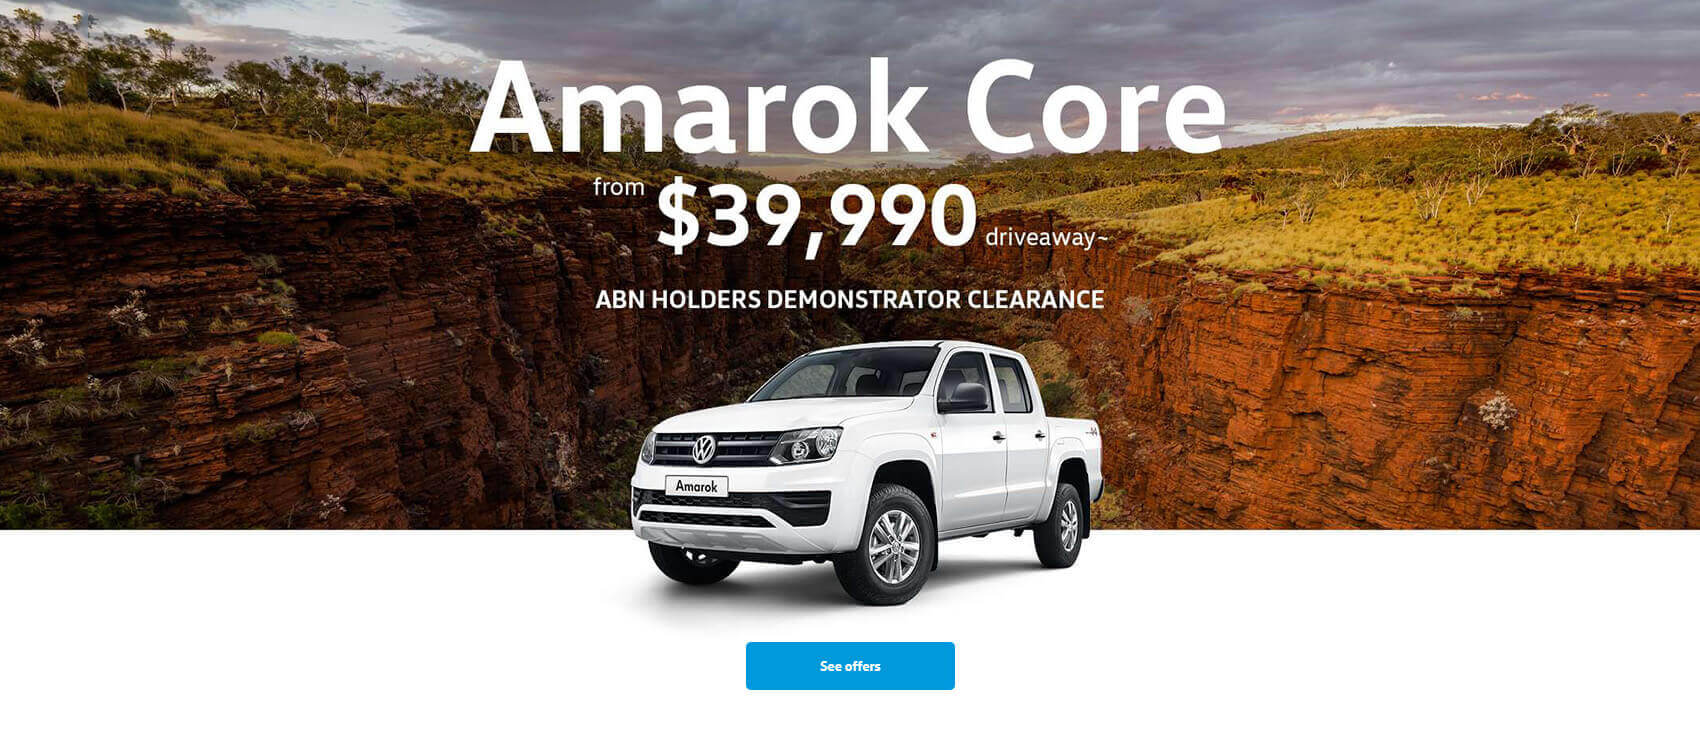 Volkswagen Amarok Core ABN Holders Demonstrator Clearance.